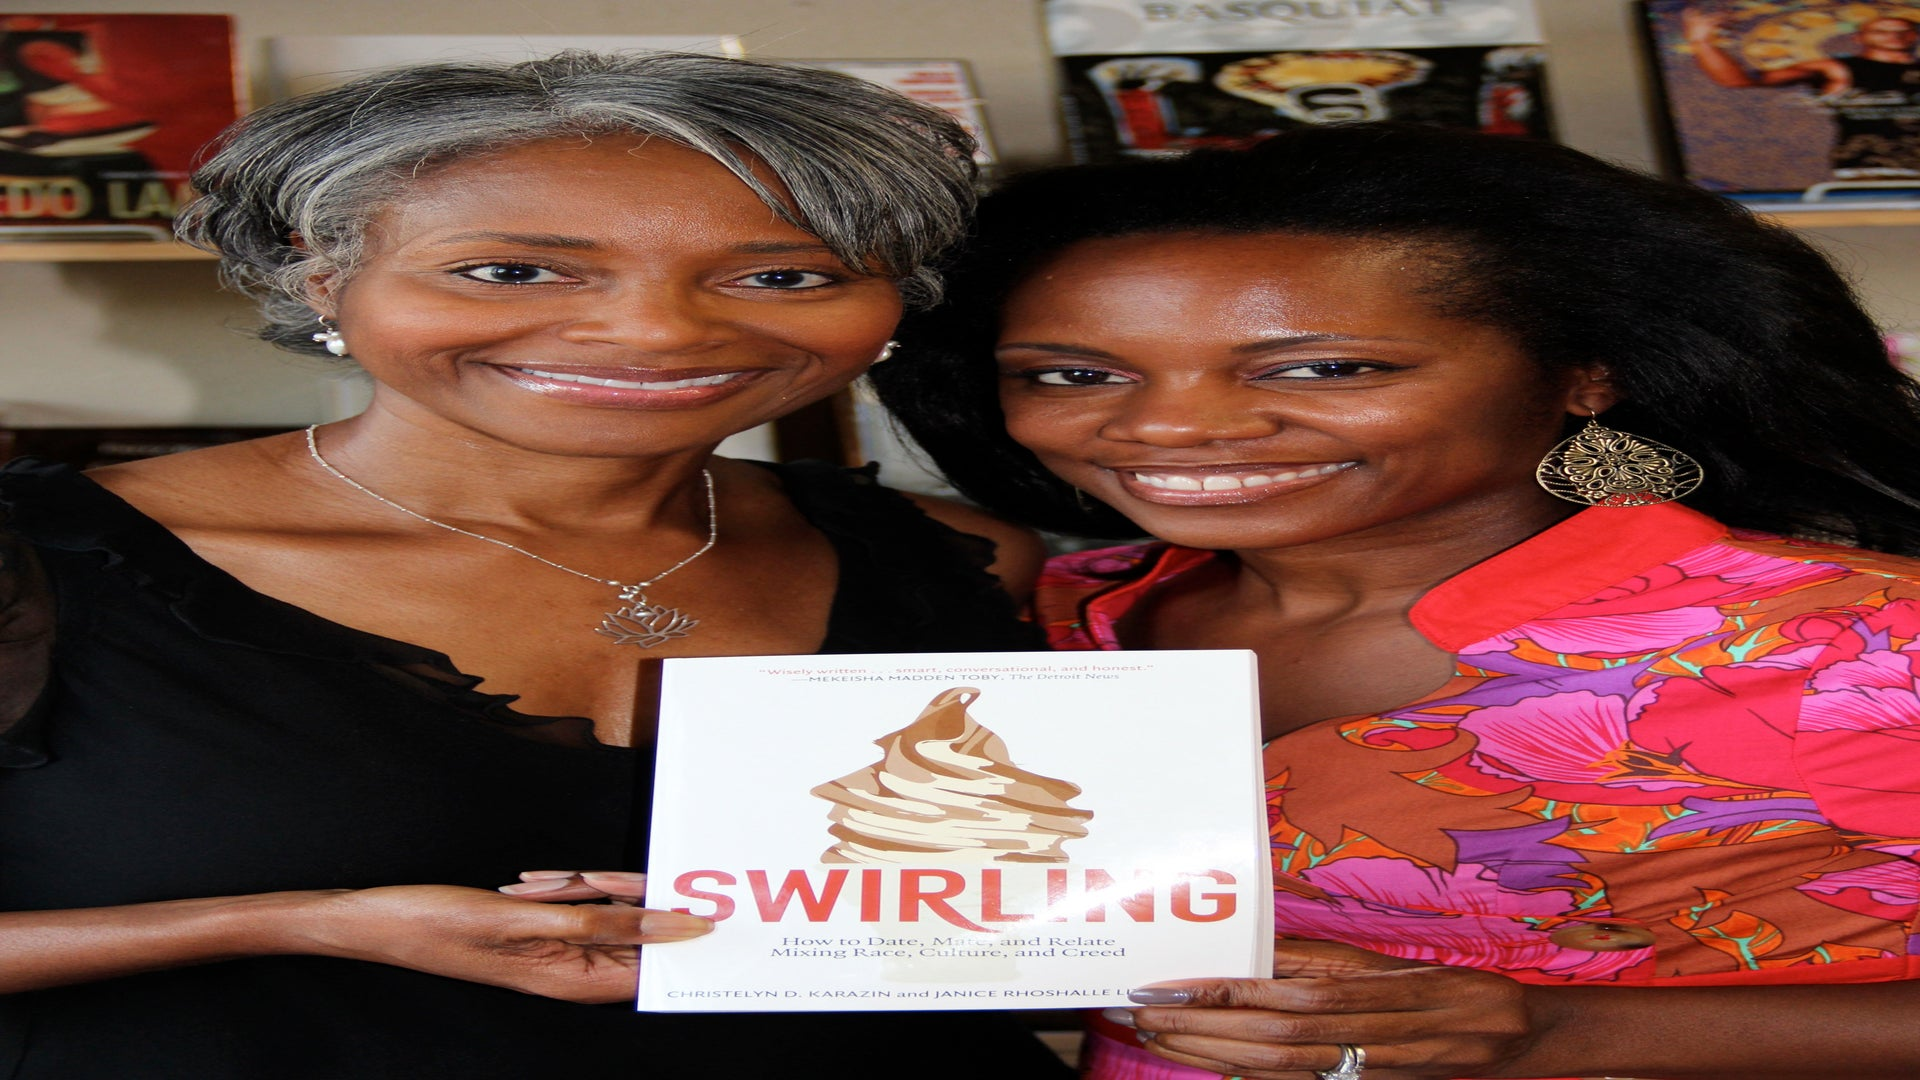 Authors of New Book 'Swirling' Get Real About Dating Across Race, Religion and Creed